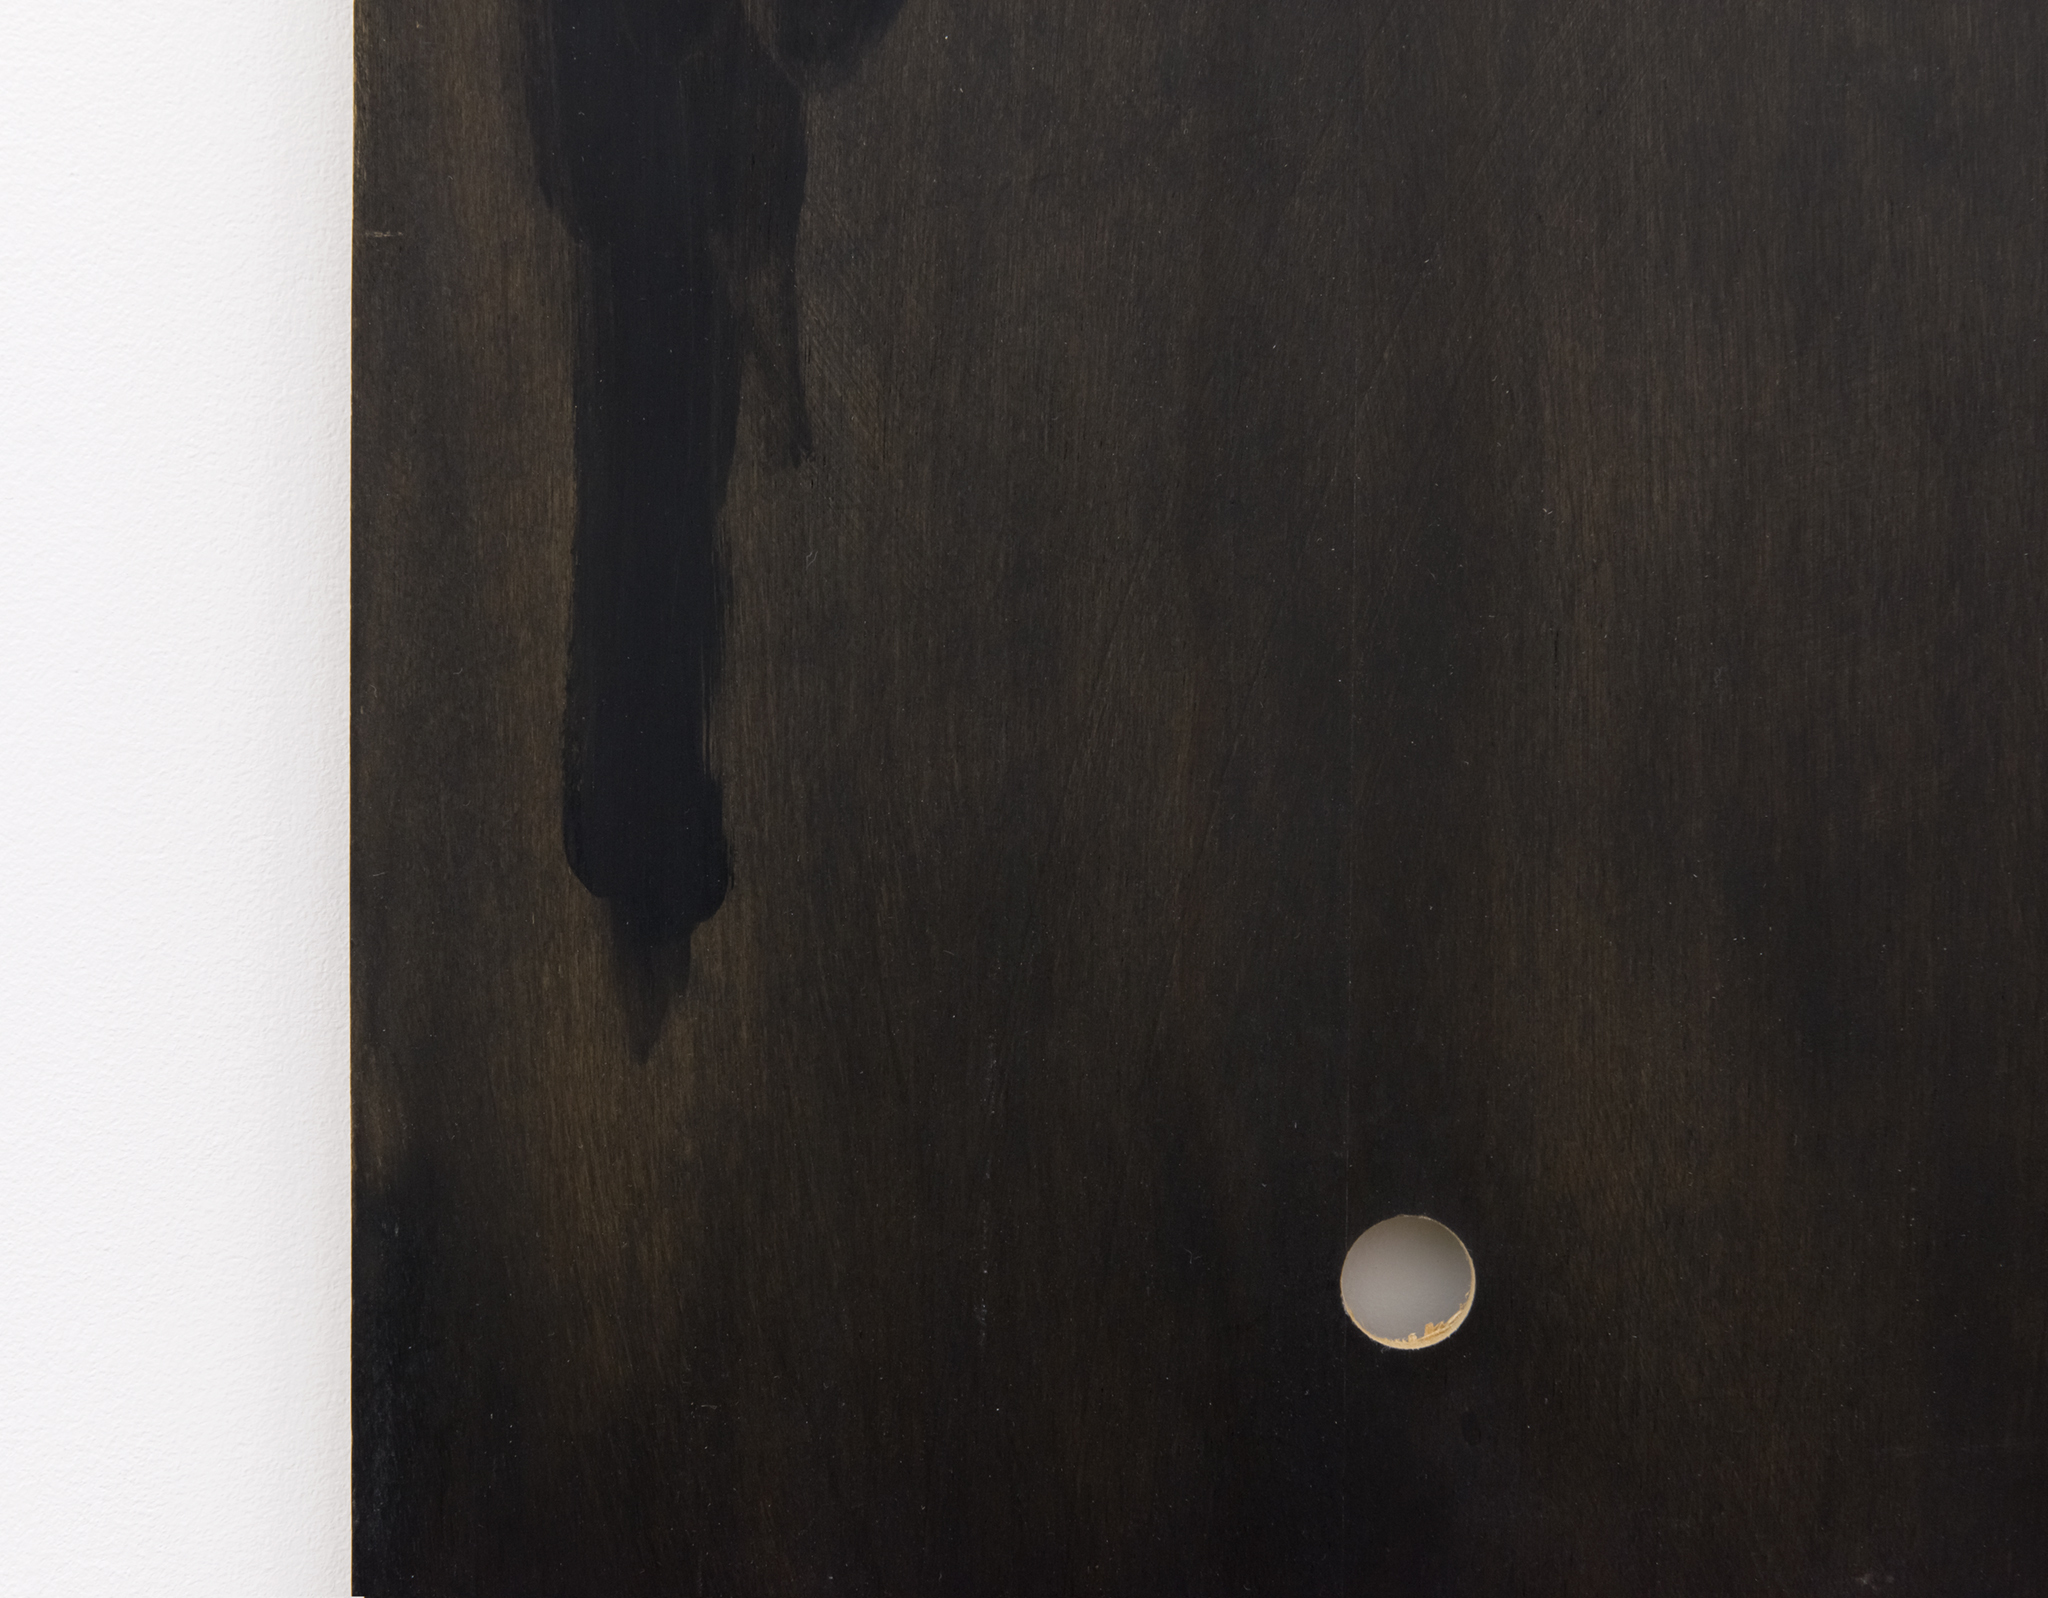 Monique Mouton, Untitled (detail), 2013, oil on wood panel, 13 x 96 x 1/4 in. (33 x 244 x 1 cm)  ​ by